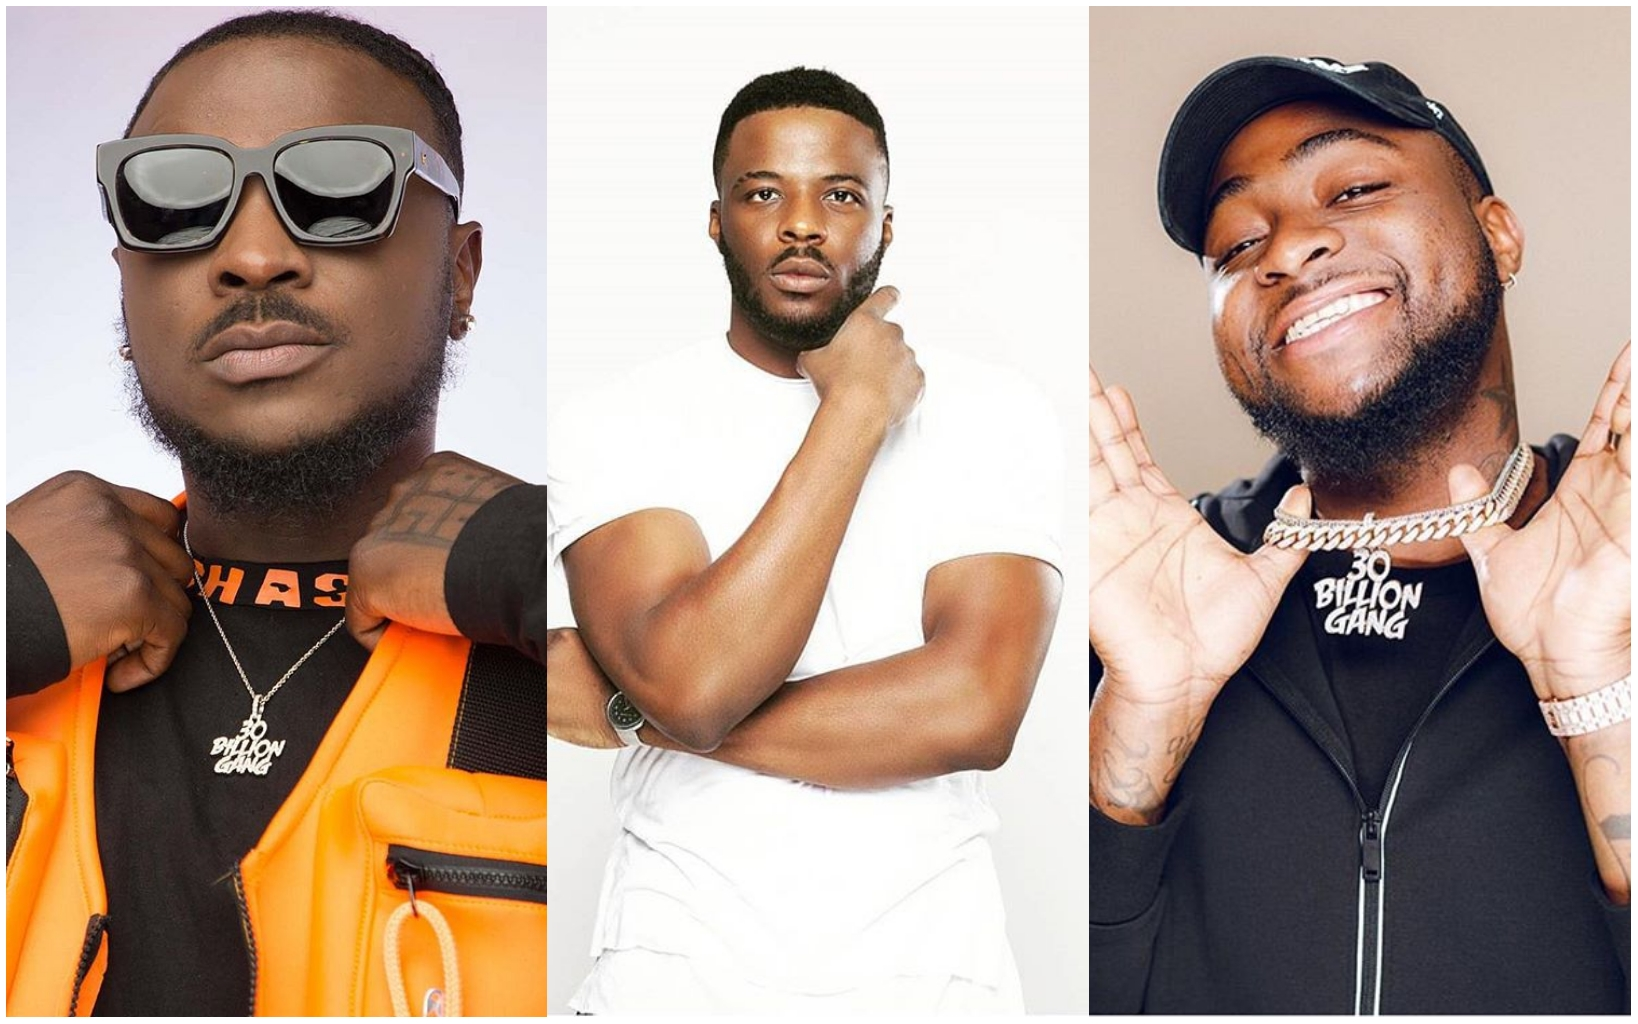 Peruzzi's ex. record label boss call him out for allegedly attacking him